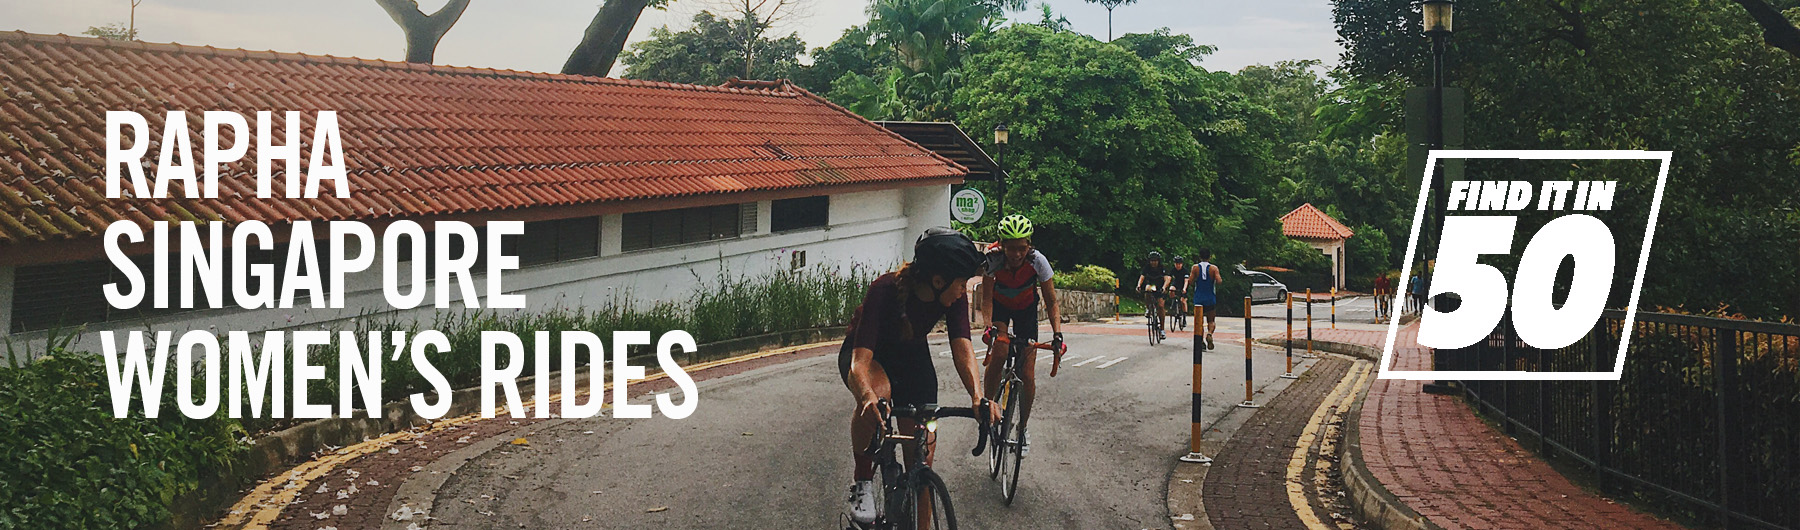 Rapha Singapore Monthly Women's Ride - Find it in 50 | 7.00am, 15 July 2018 | Macritchie Reservoir Drop Off